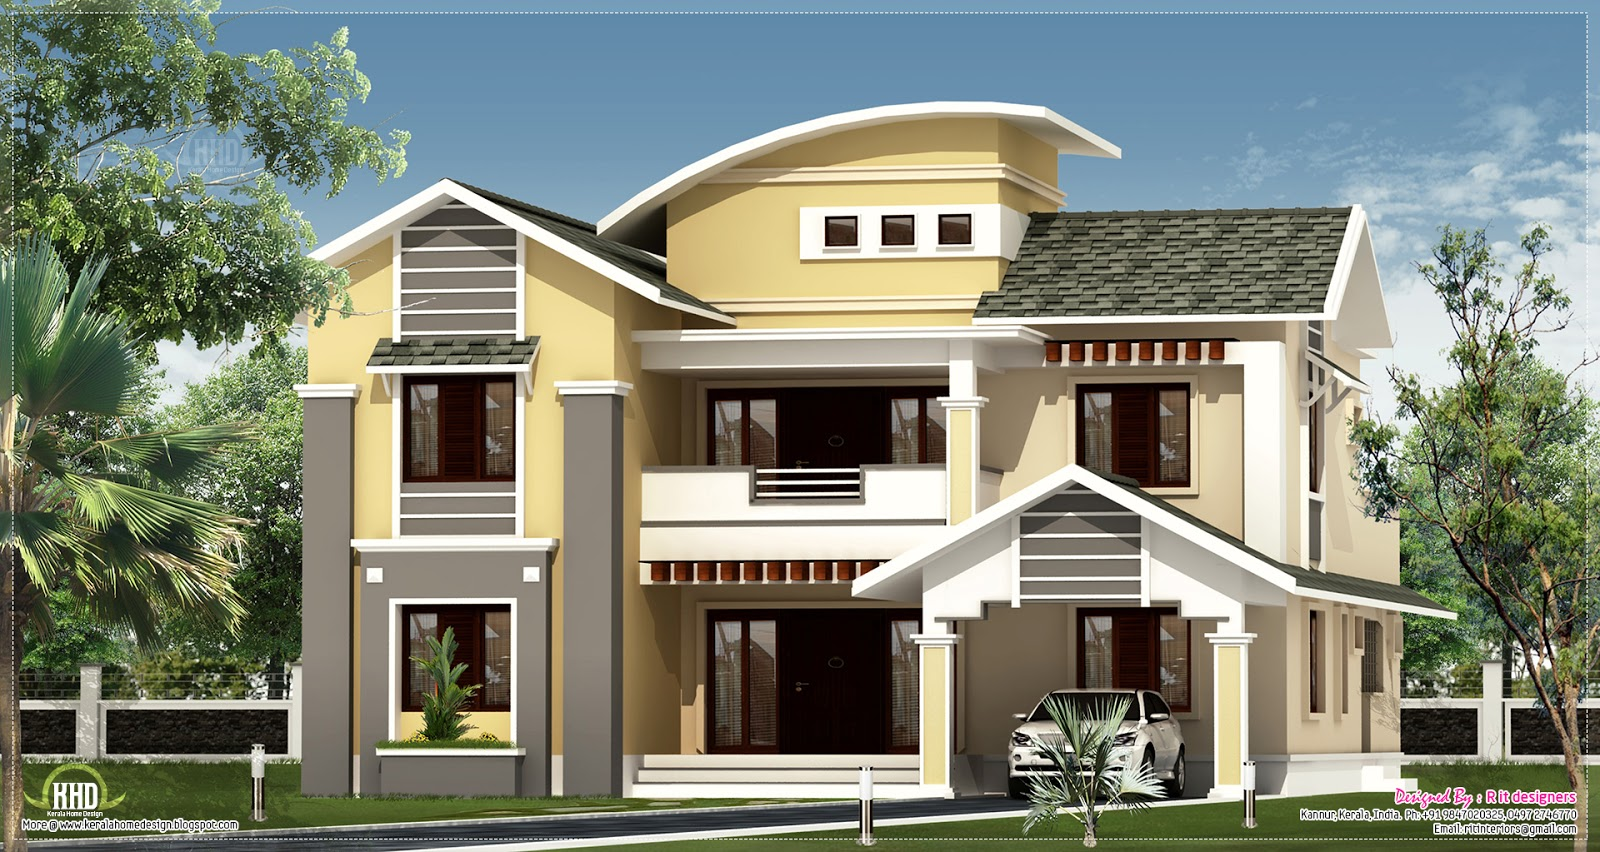 Modern kerala villa with mixed roof styles for Kerala style villa plans